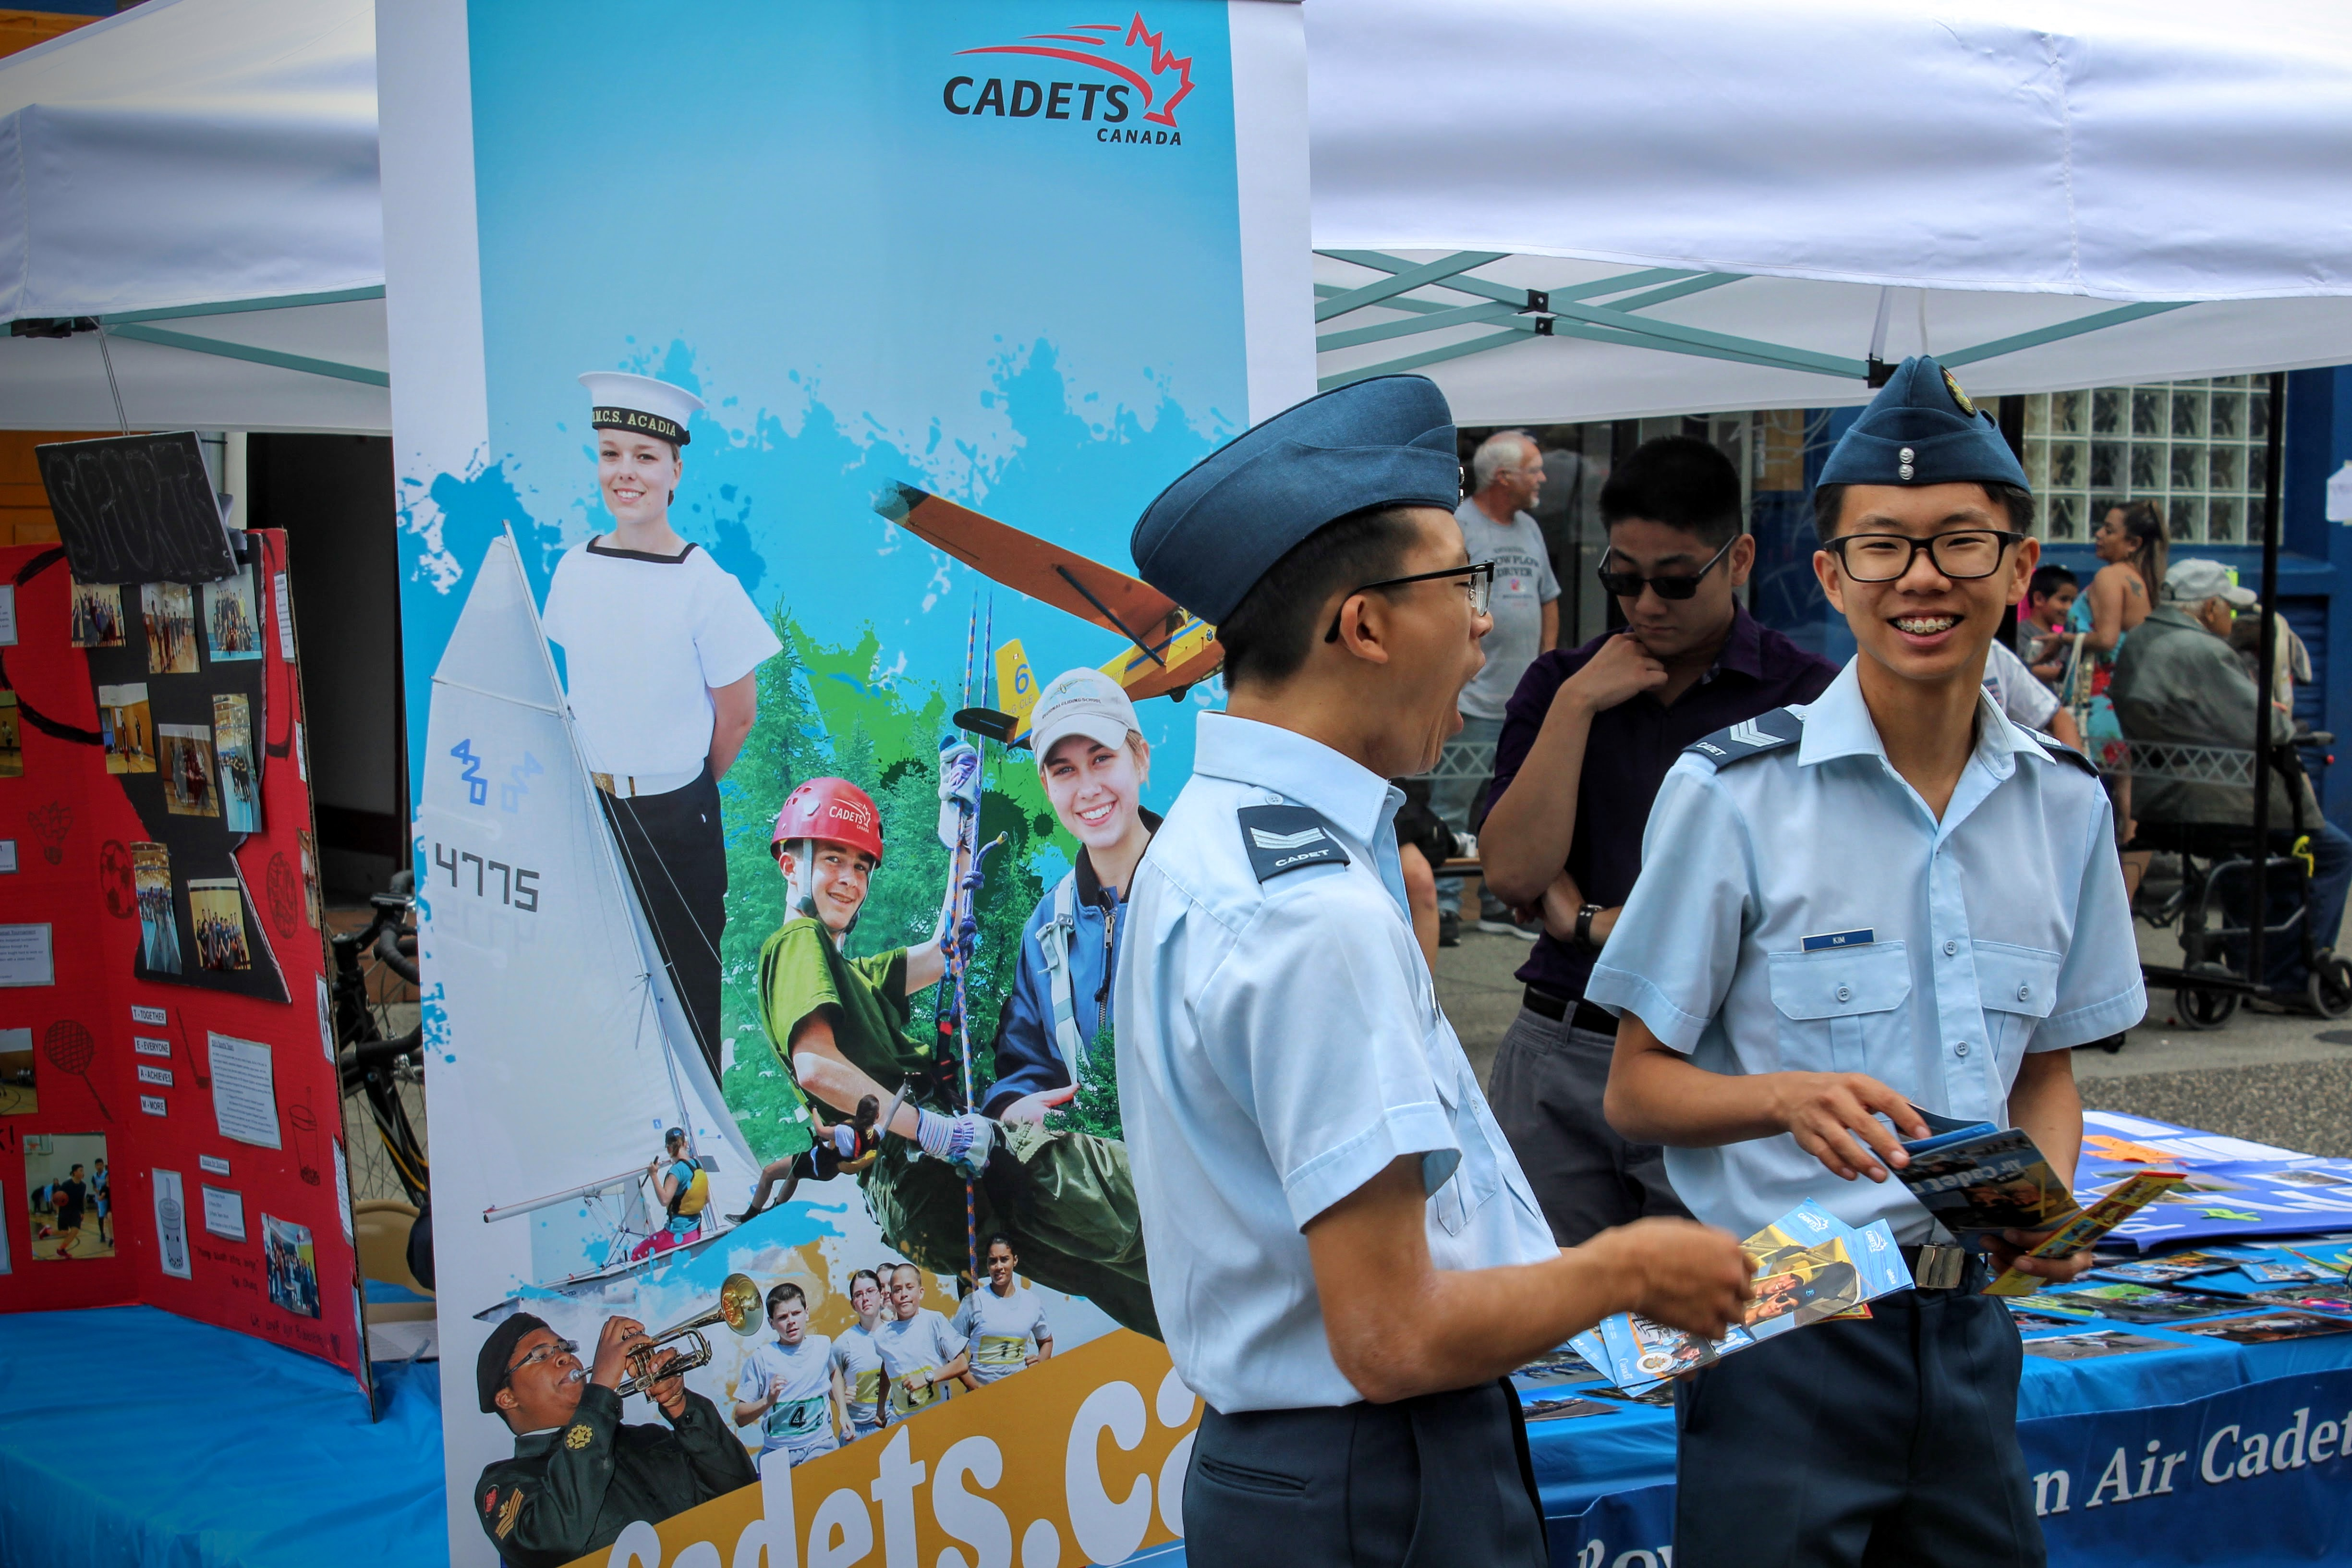 Chinese-Canadian boys promoting Canada's cadets program during the Italian day festival